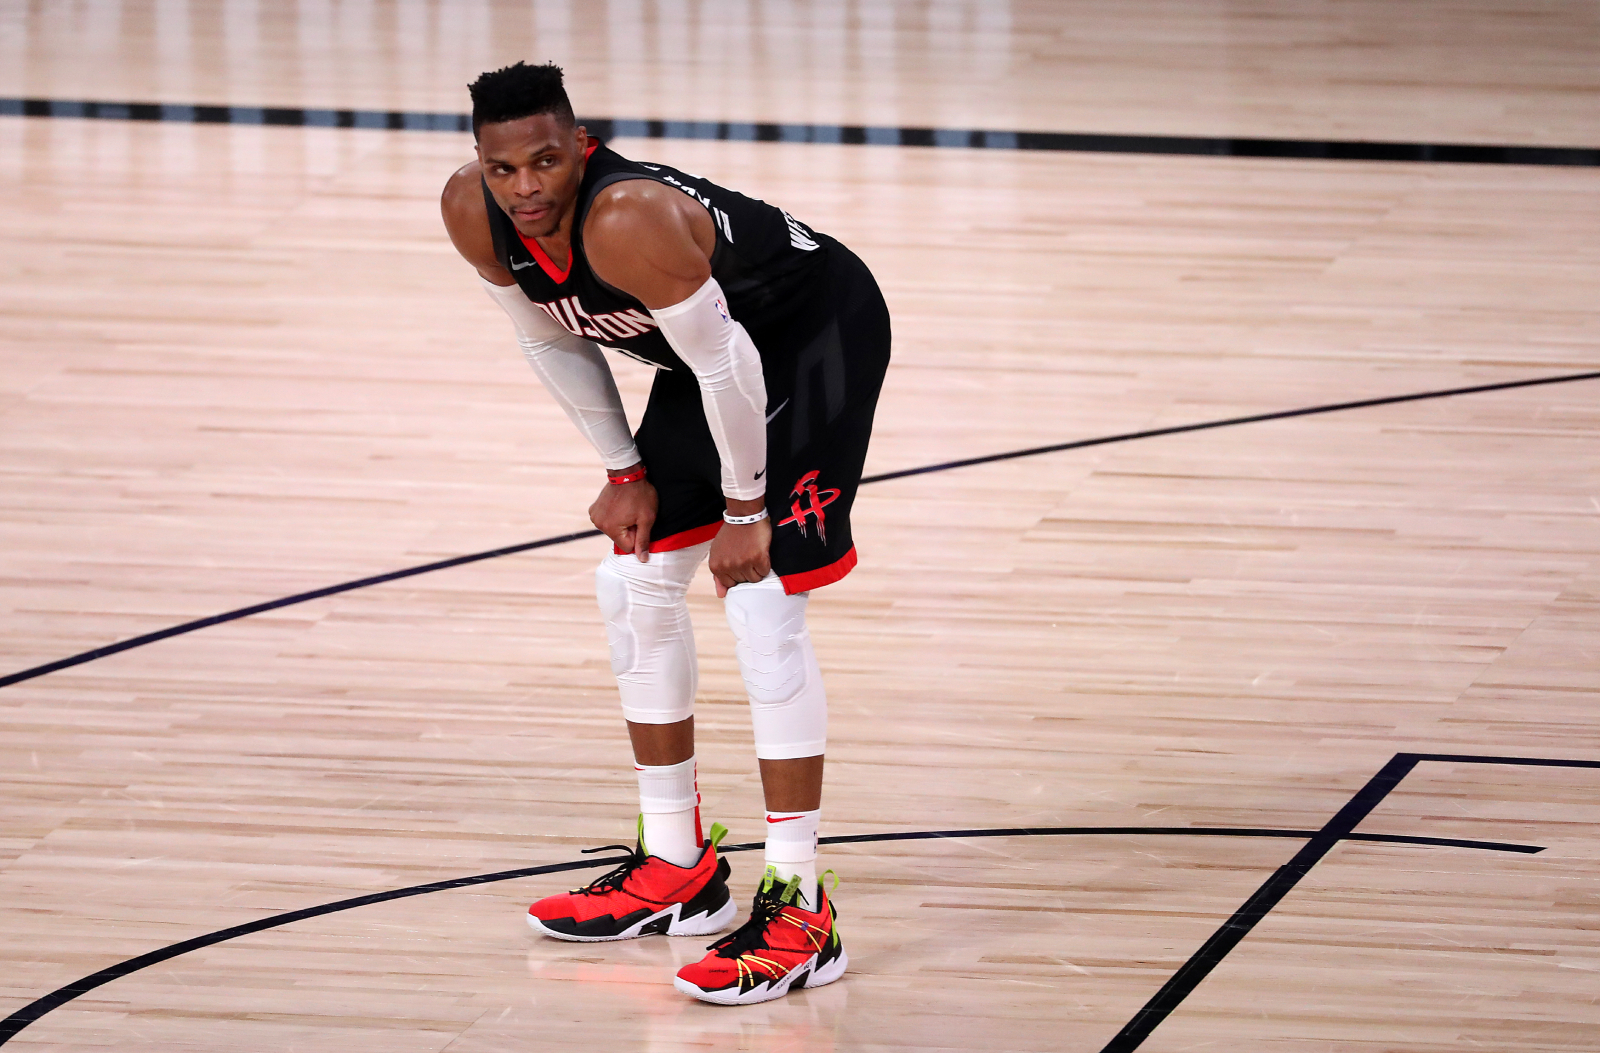 Russell Westbrook exchanged words with Rajon Rondo's brother during a recent playoff game. The Rockets' star was not happy after the game.